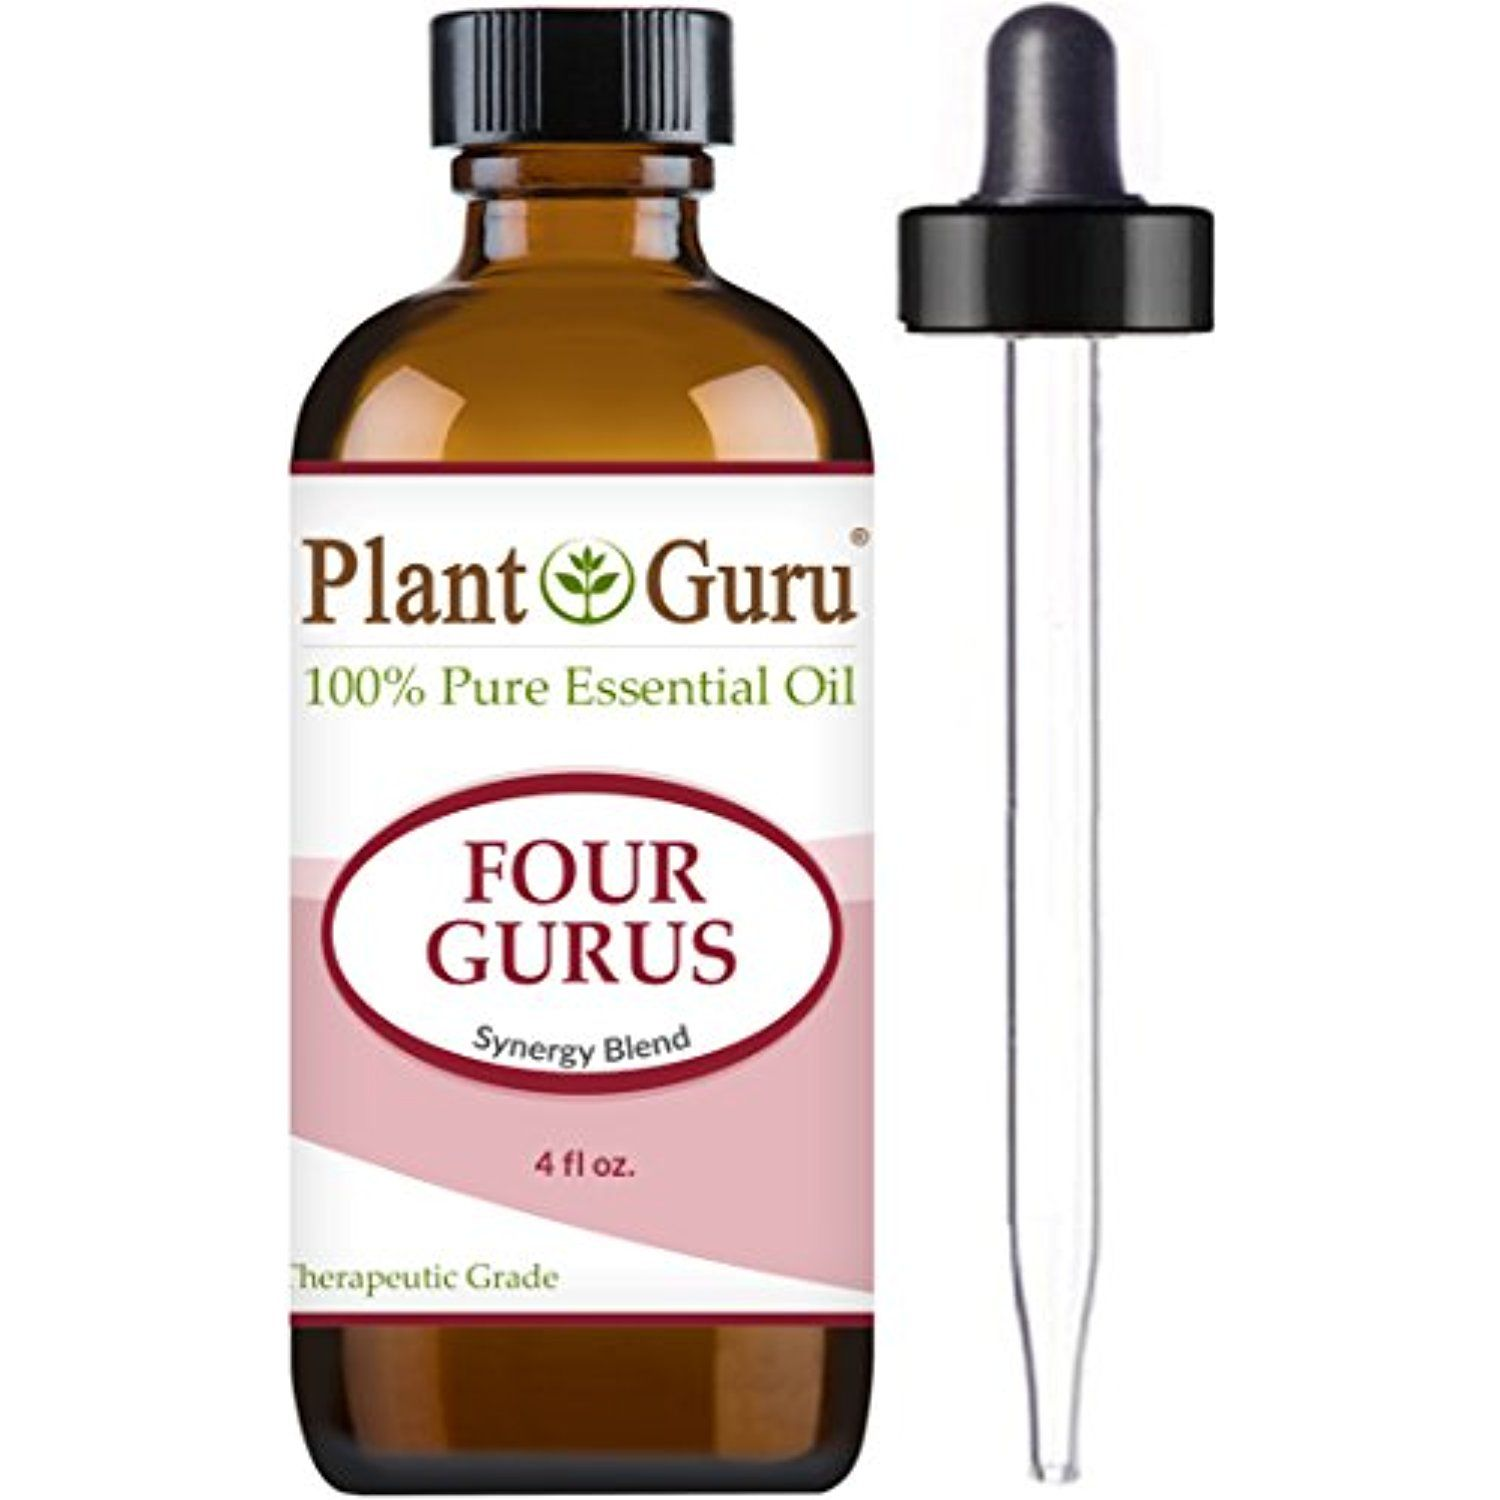 Four Gurus Synergy Blend Essential Oil 4 oz. - 100% Pure Therapeutic ...